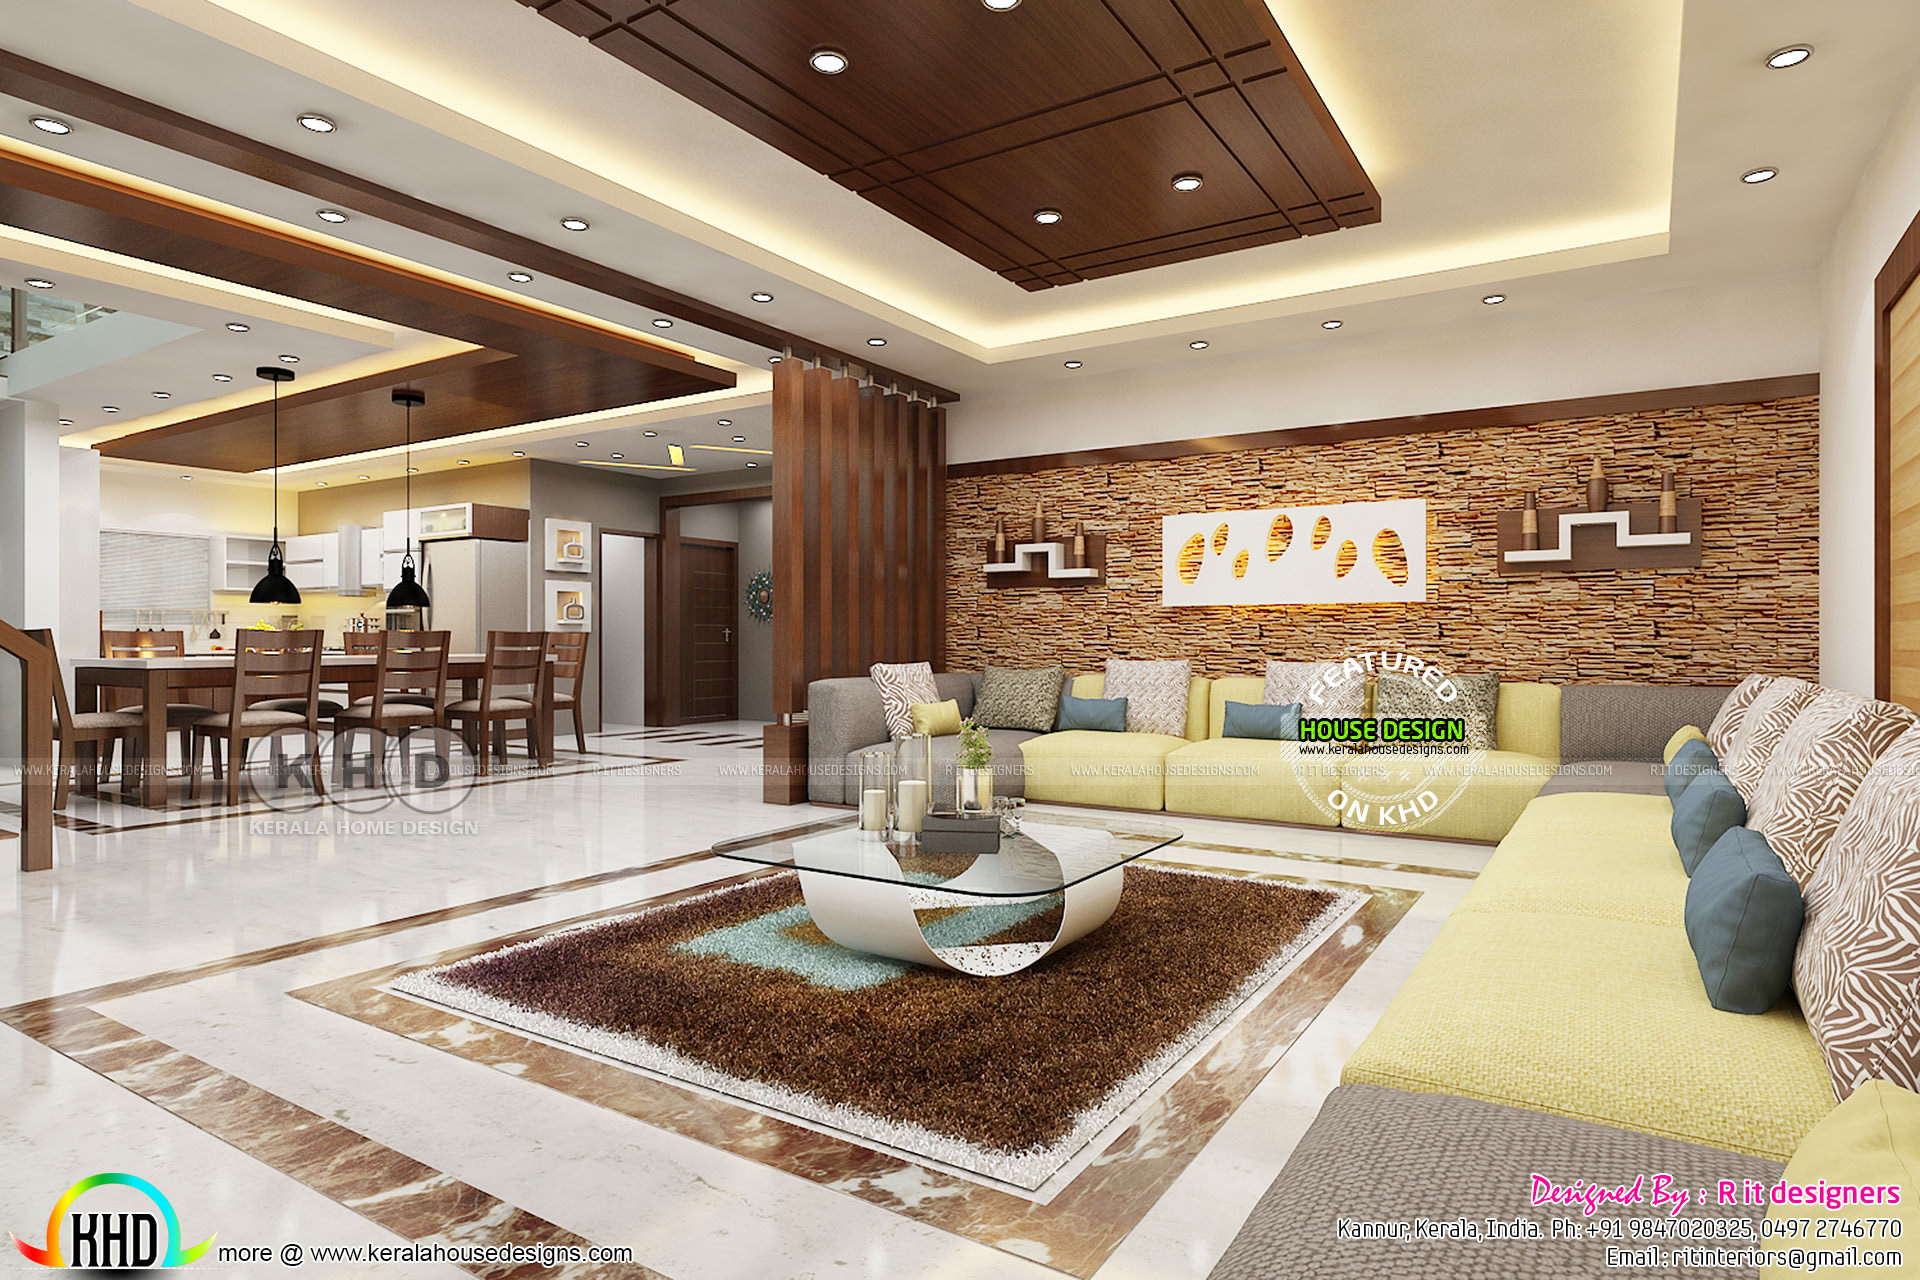 Bedroom Ceiling Designs Kerala House Design And Inside Interior Kerala Home Design And